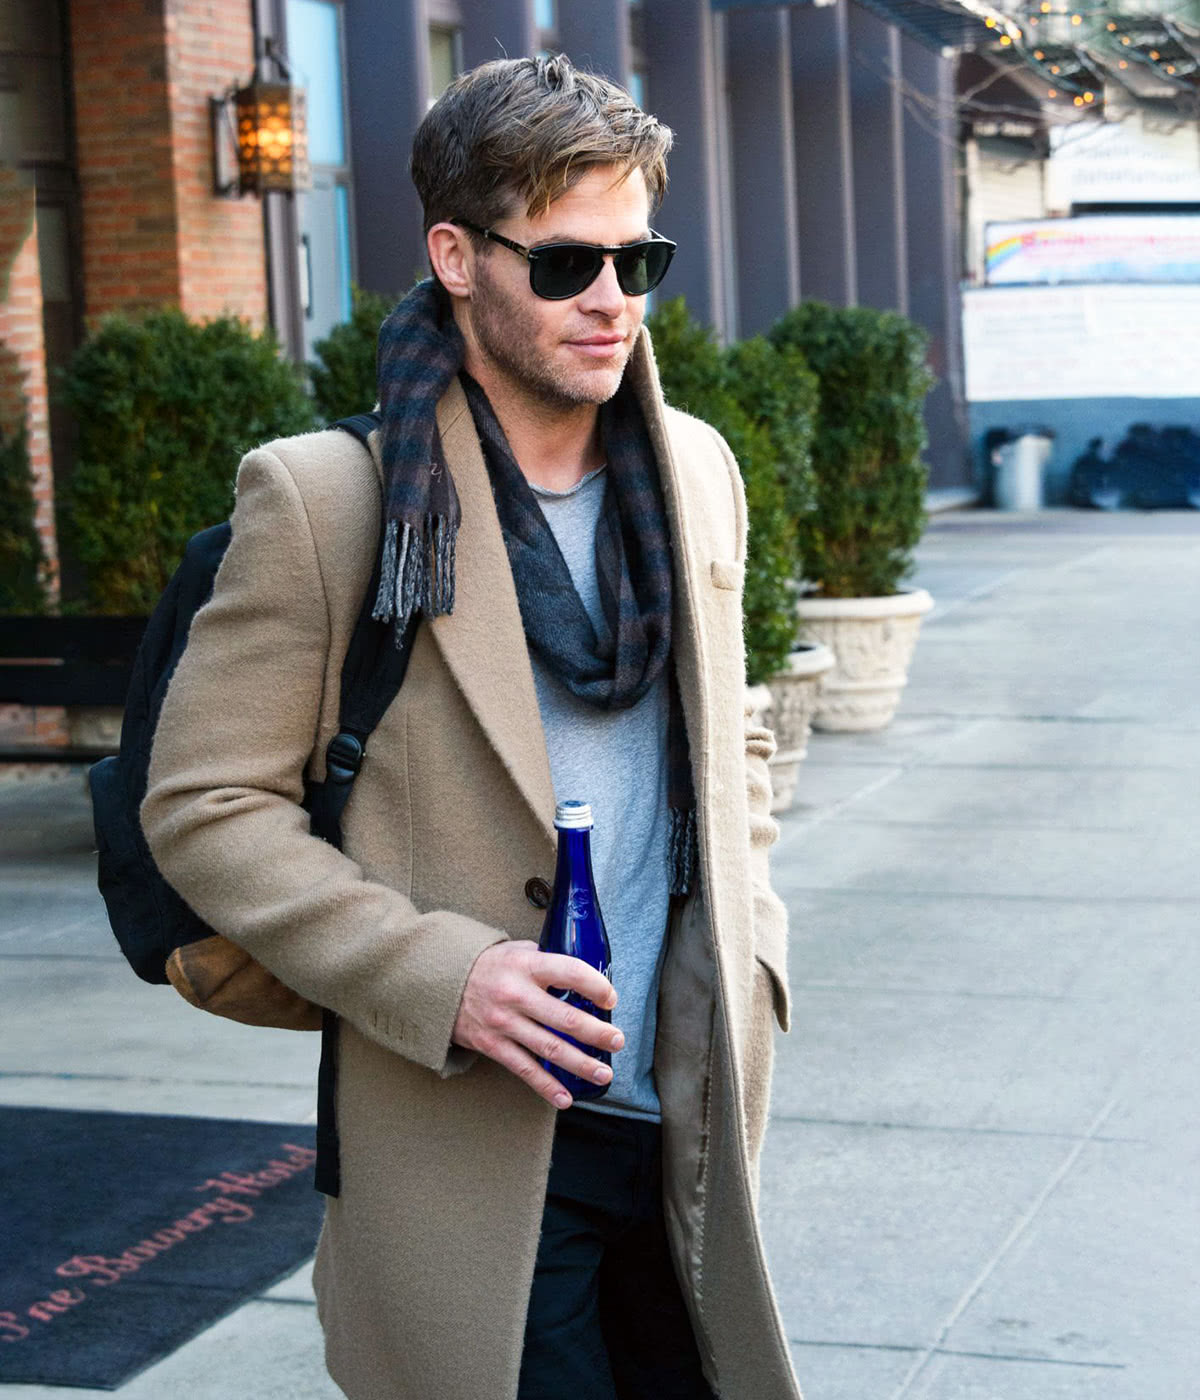 Casual dress code men style Chris Pine - Luxe Digital